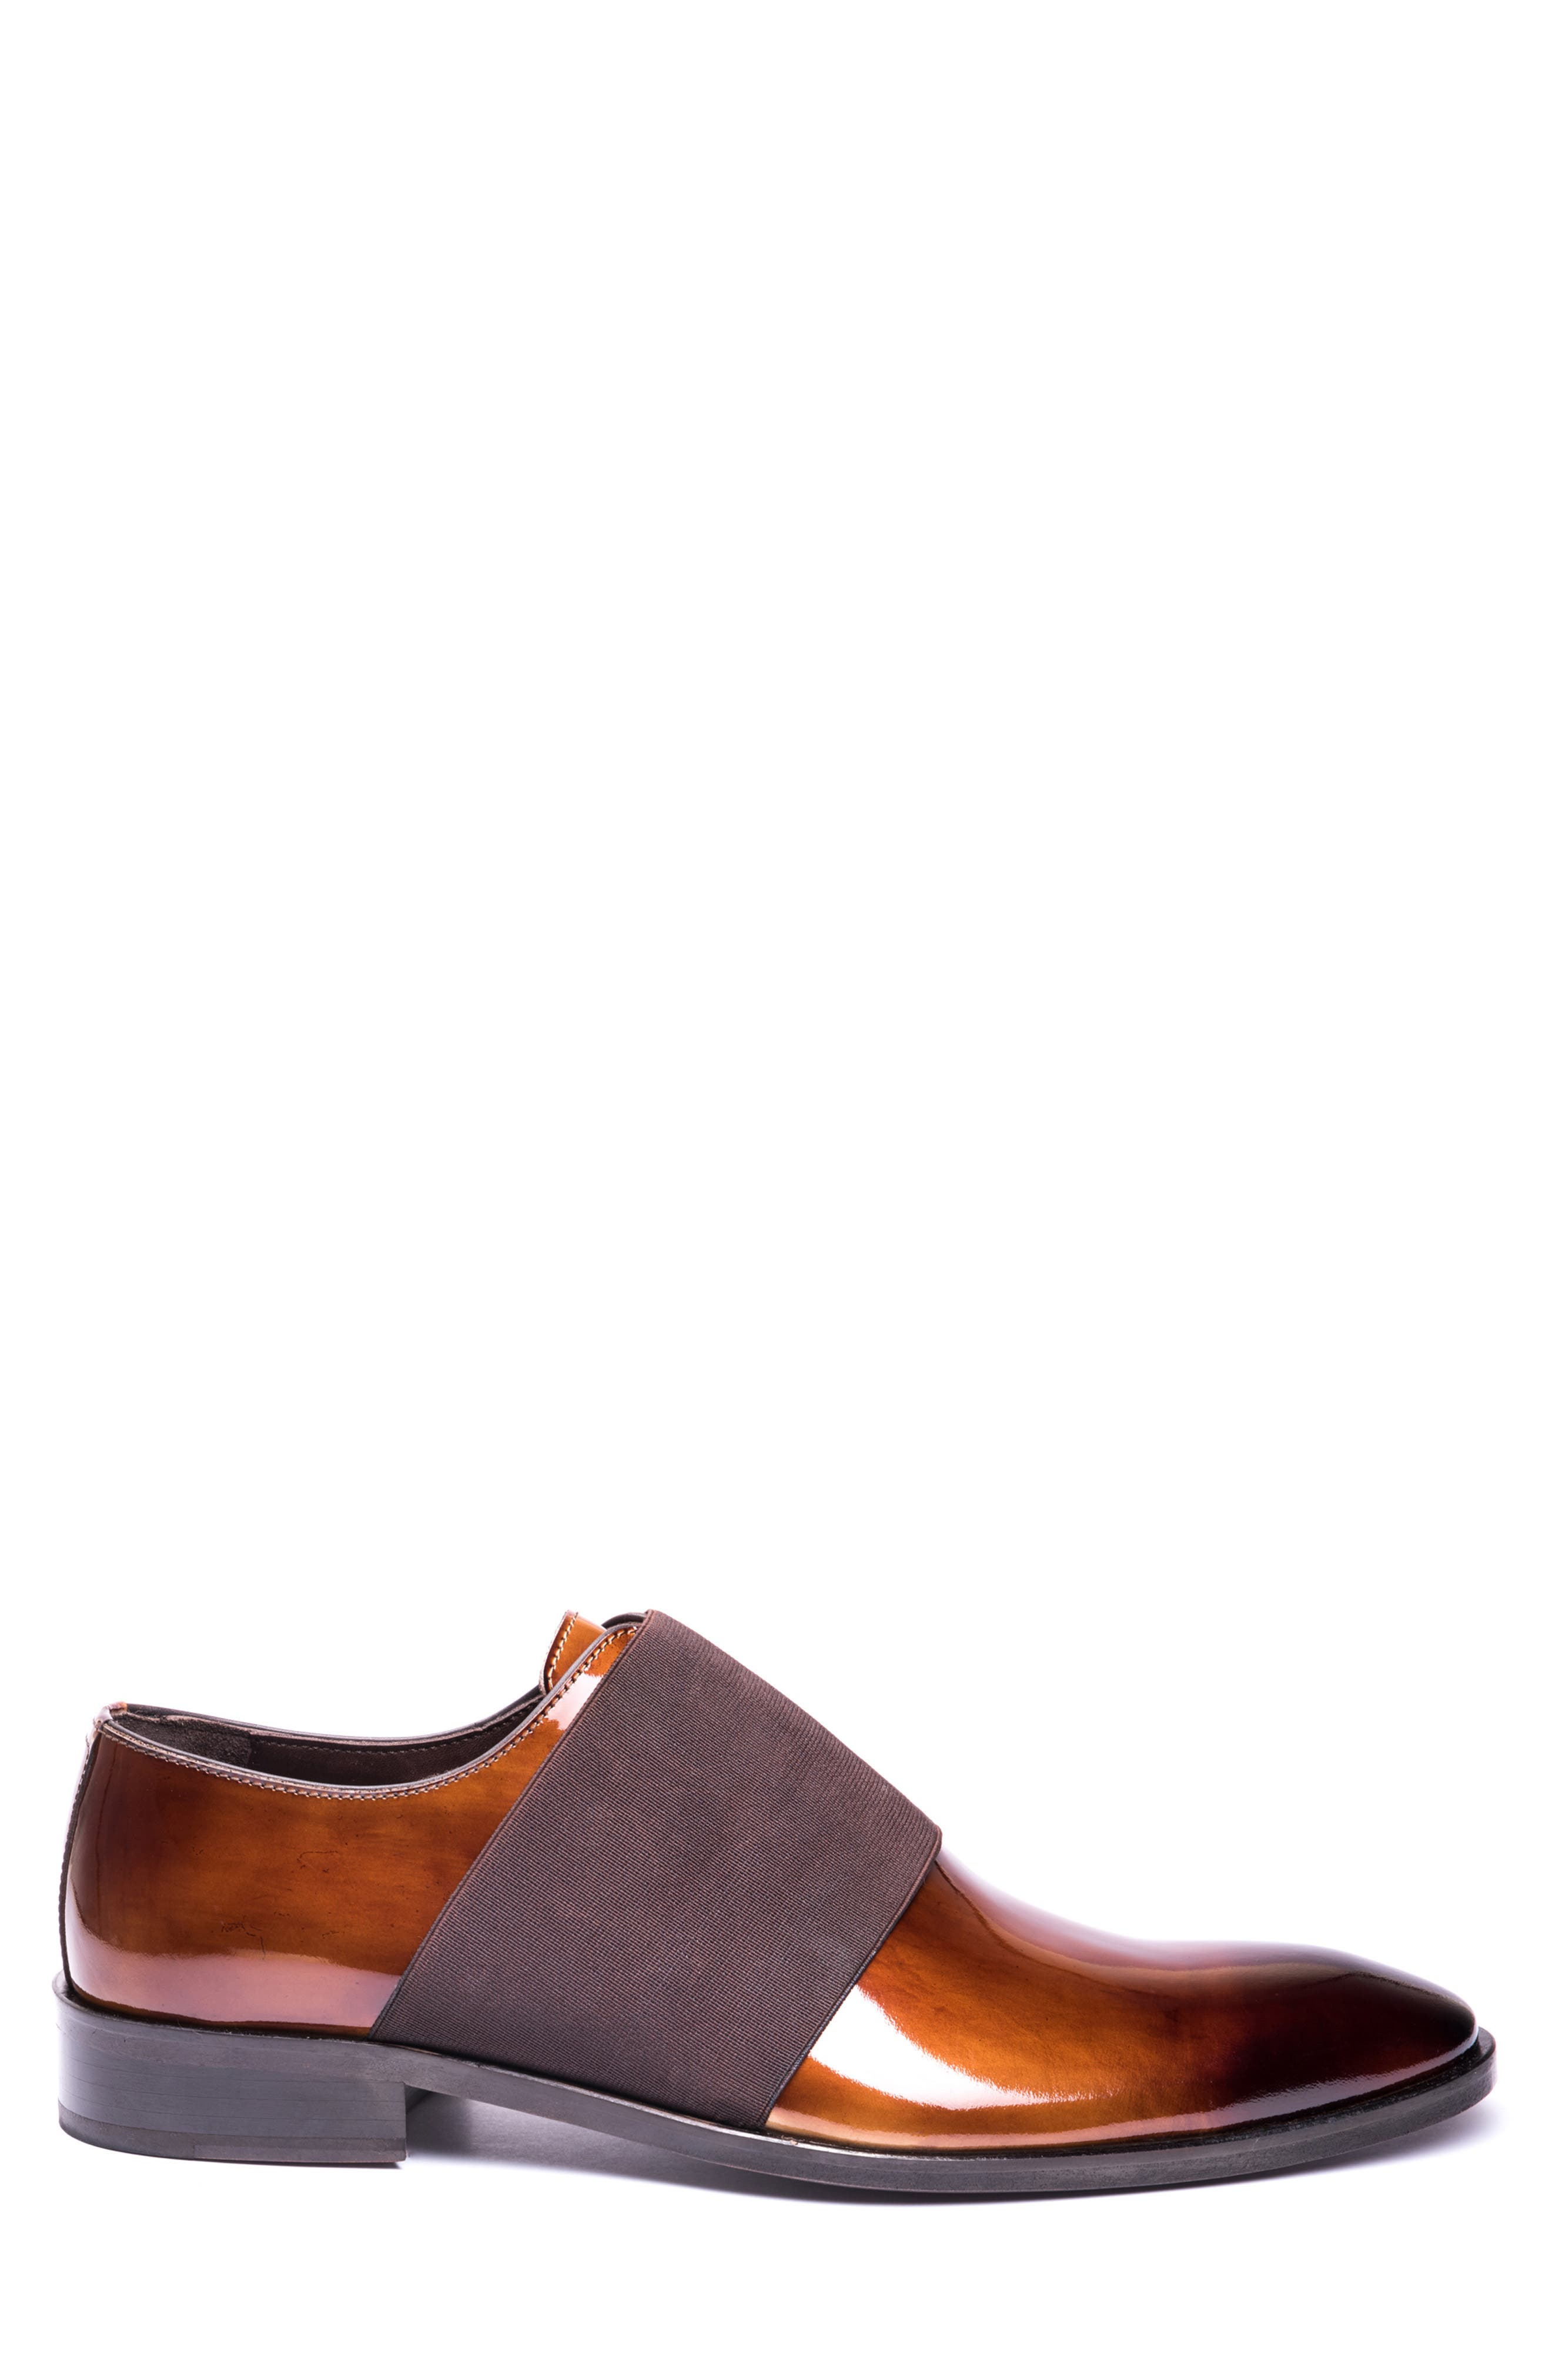 JARED LANG, Vincenzo Whole Cut Slip-On, Alternate thumbnail 3, color, BROWN LEATHER